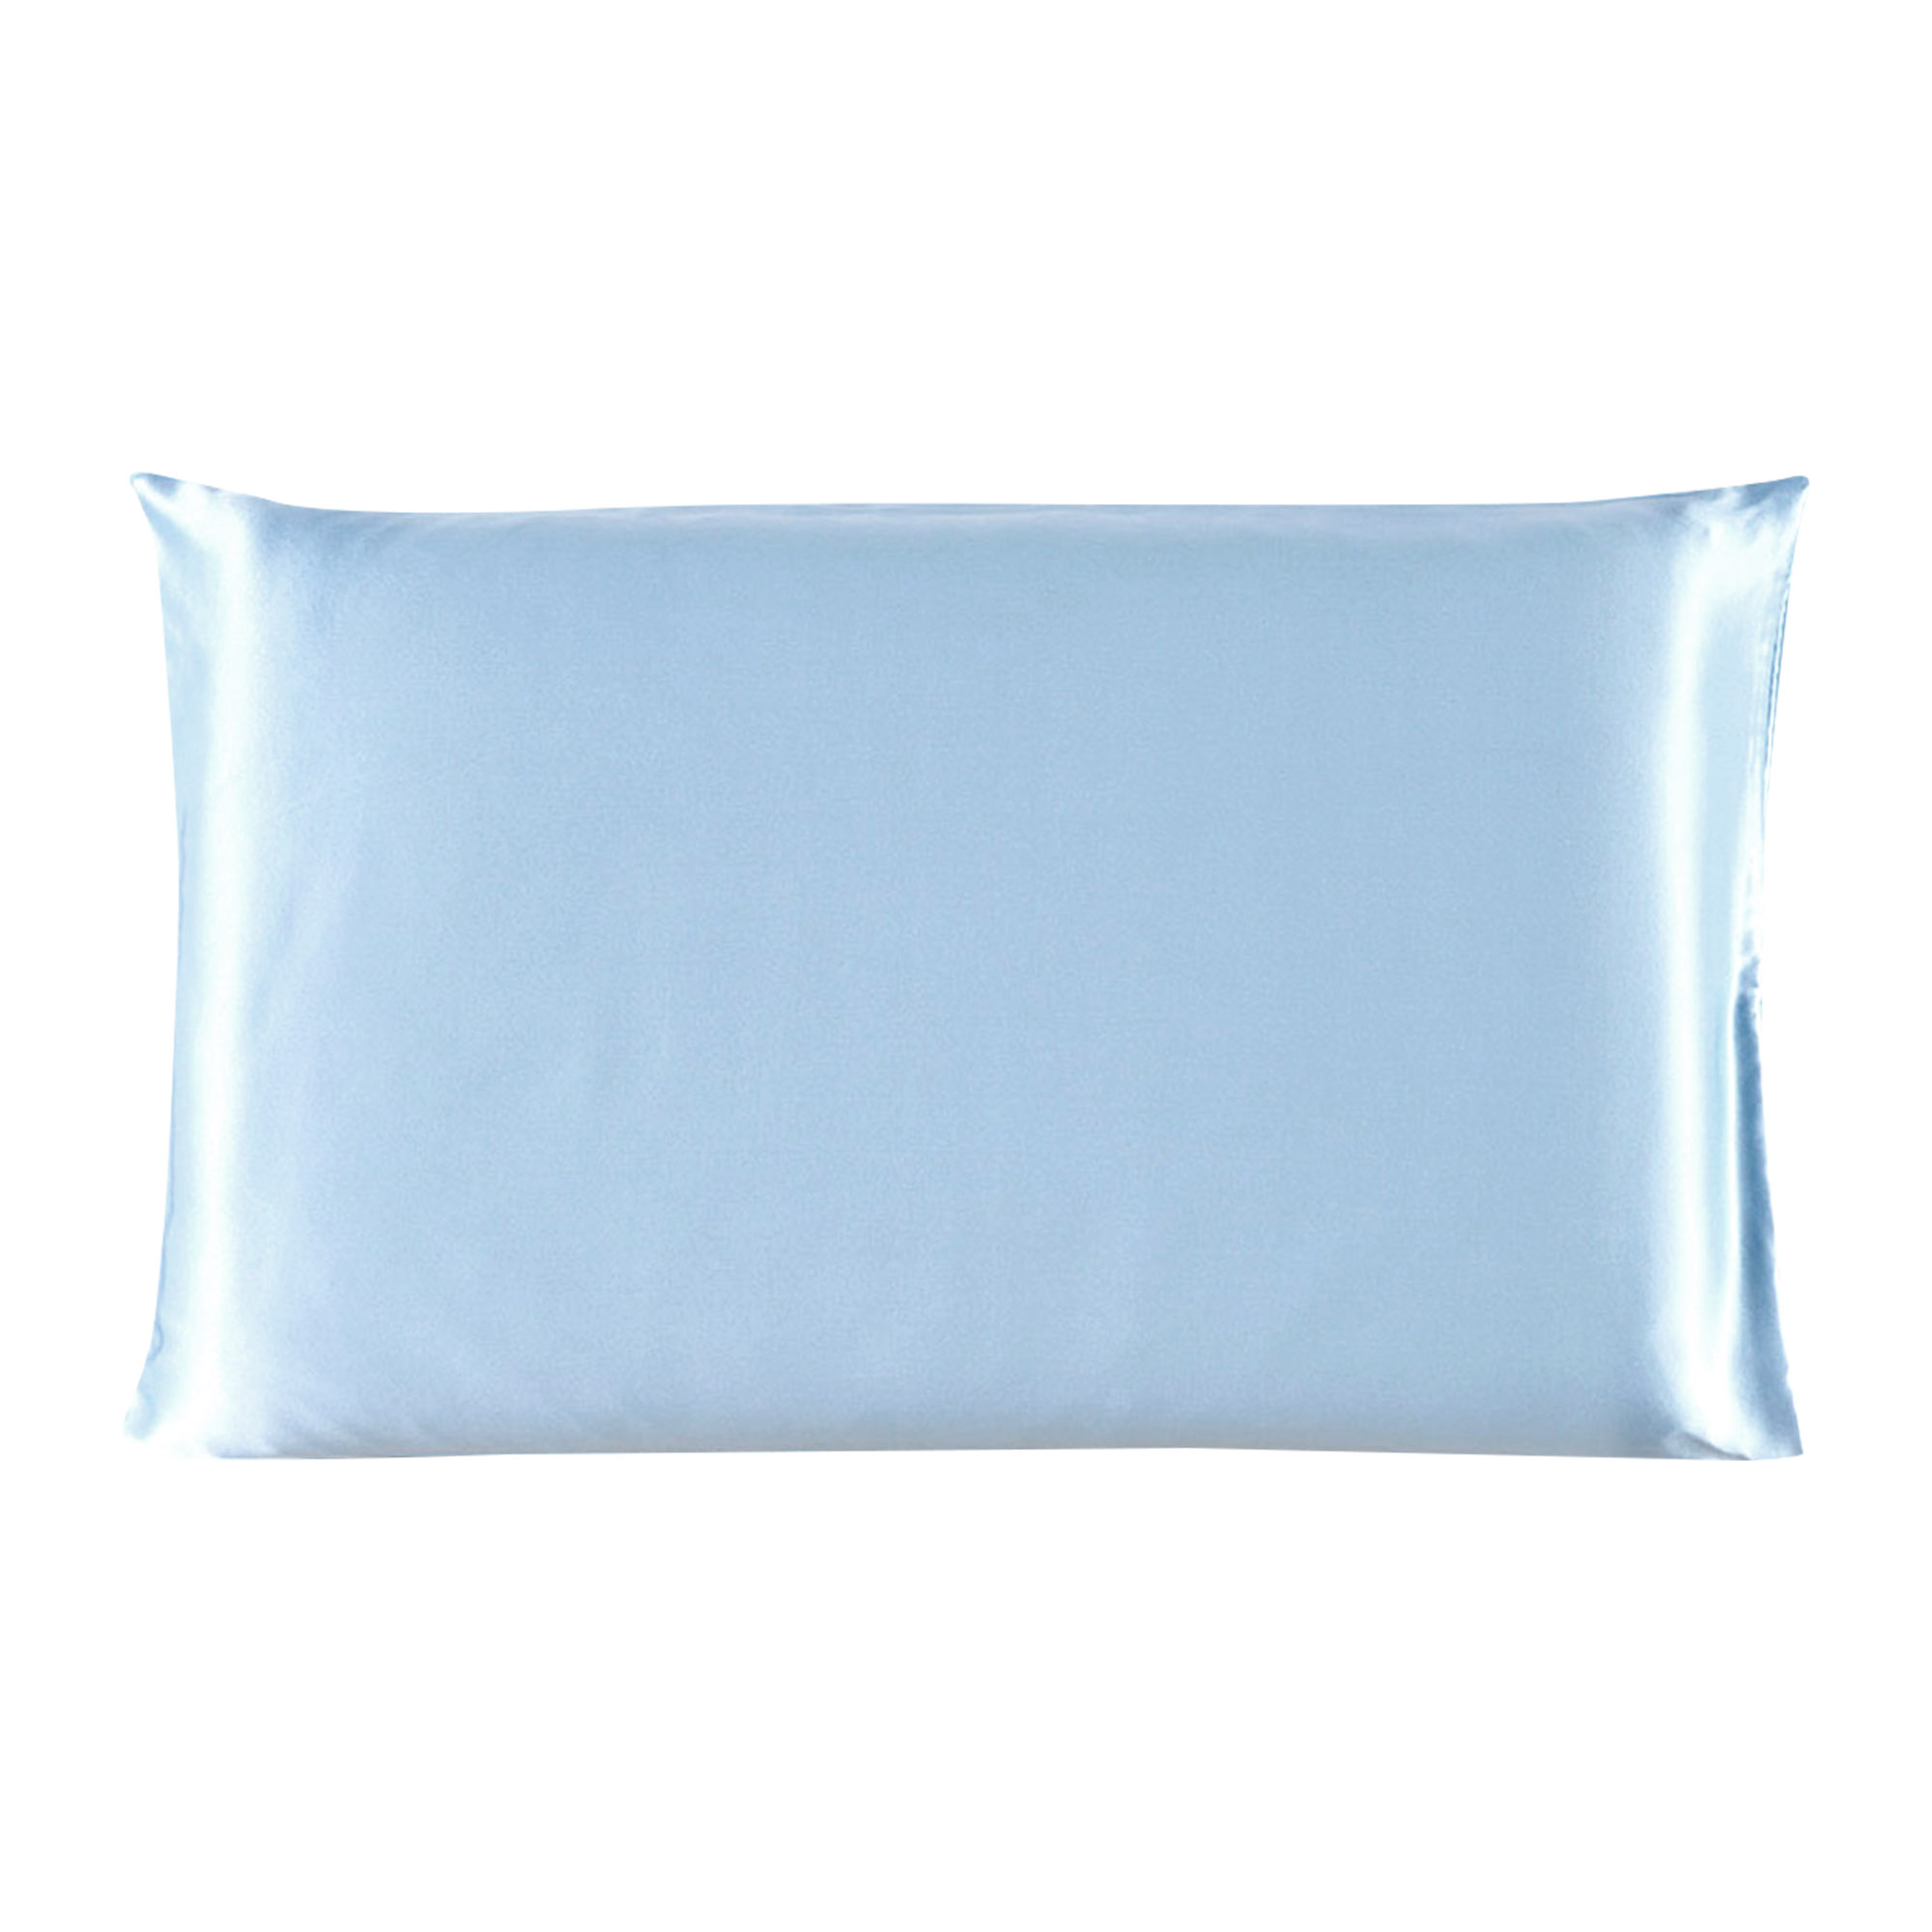 Piccocasa 100% Mulberry Silk Pillow Case Cover Pillowcase Blue Queen Size